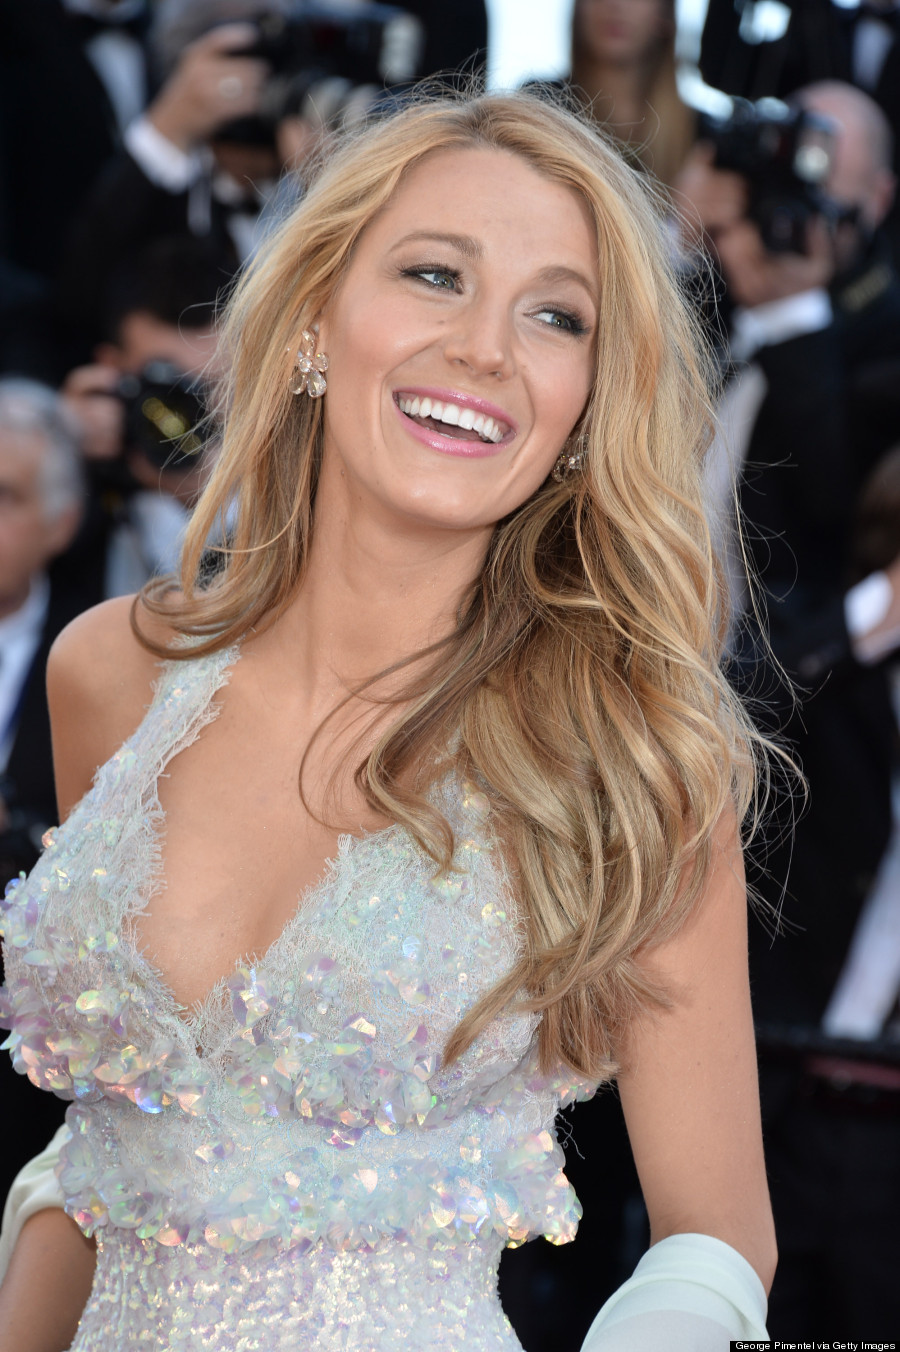 Blake Lively Rocks Chanel Illusion Dress At 2014 Cannes (PHOTOS) Blake Lively